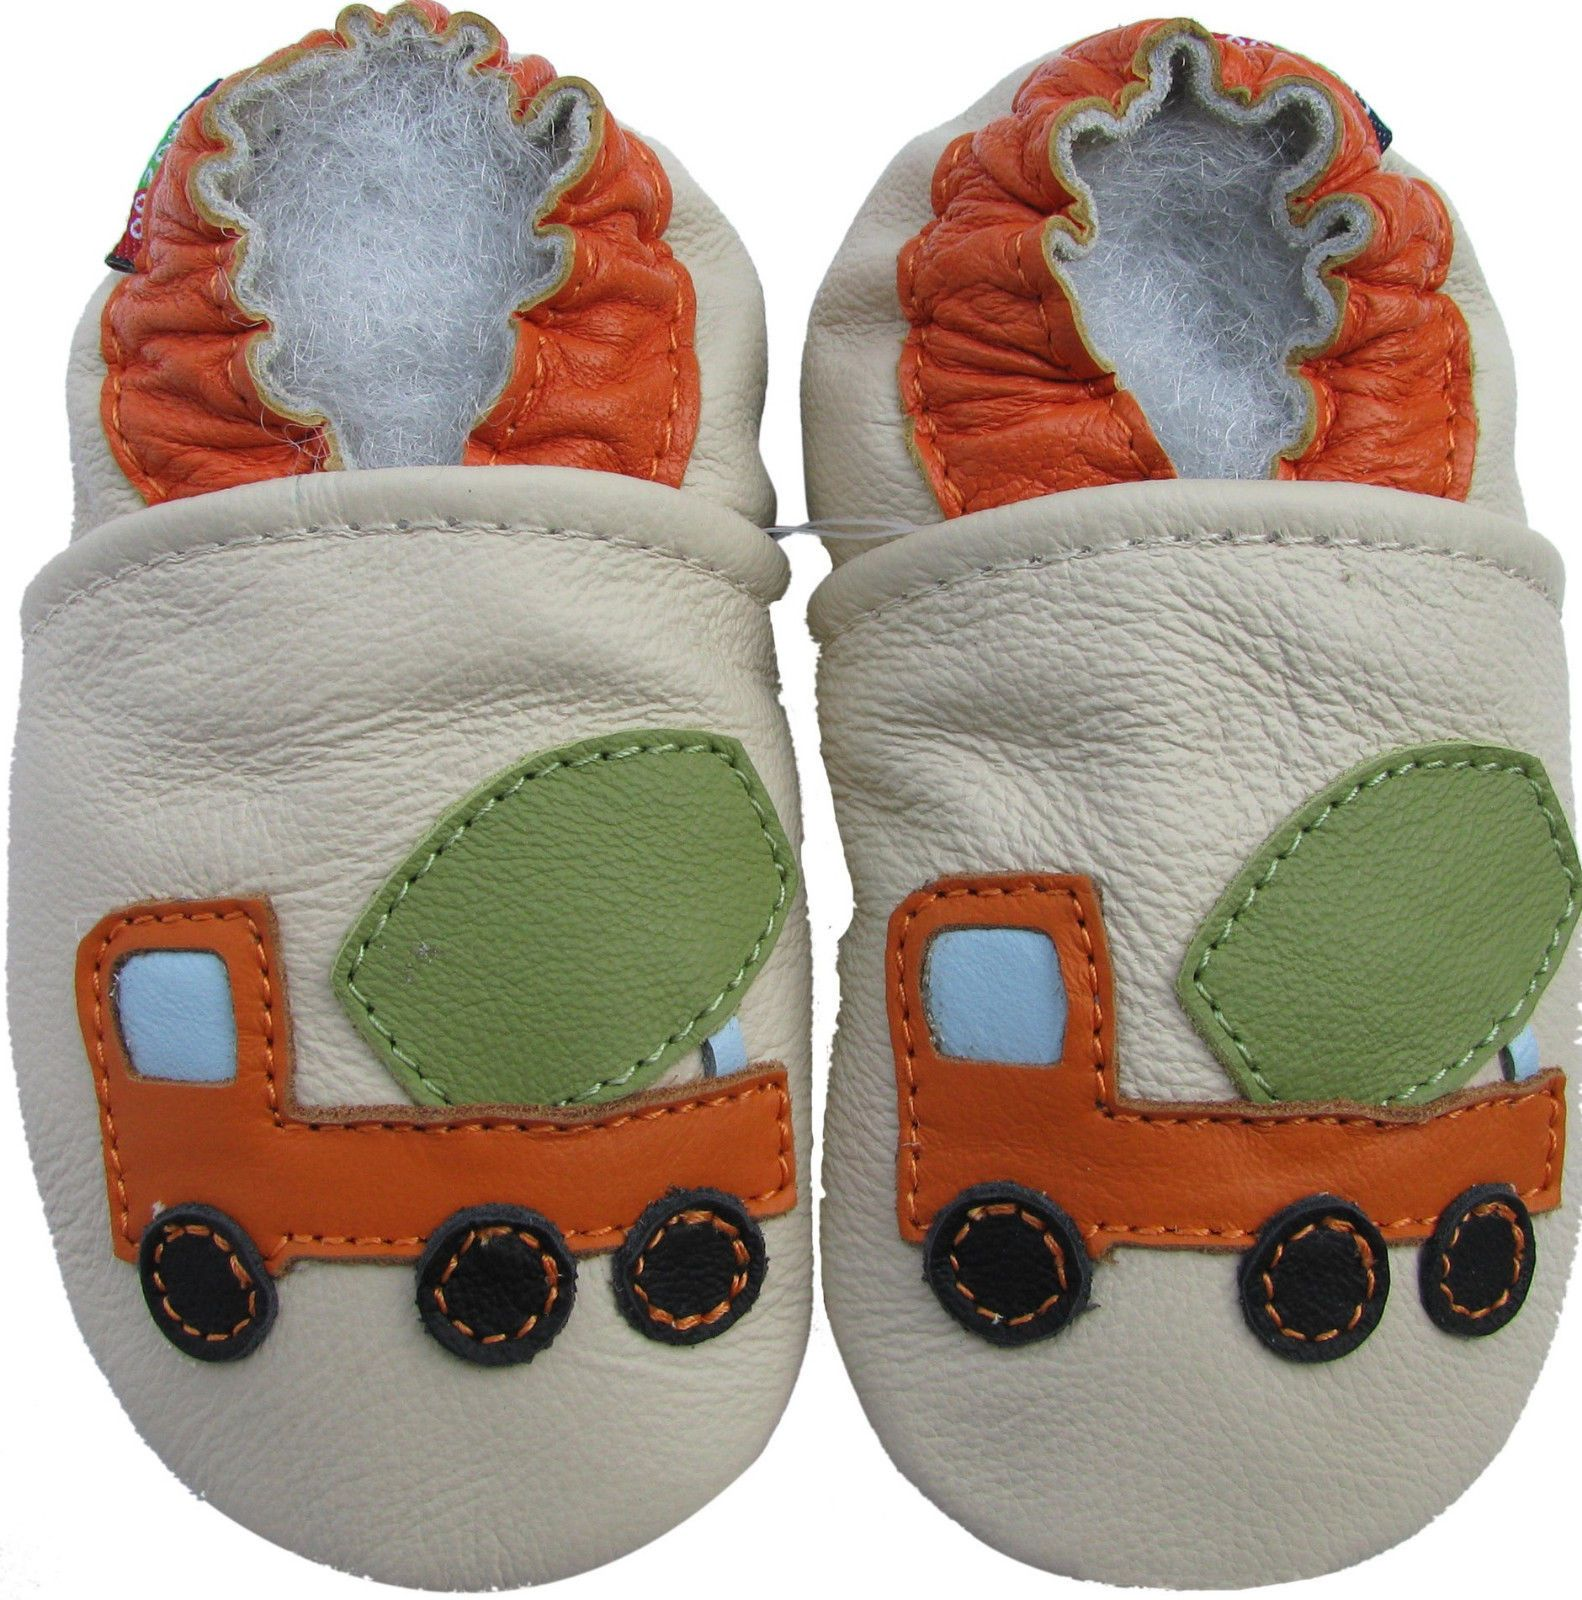 Carozoo Baby boy Soft Sole Leather Infant Toddler Kids Shoes Cement Truck Cream